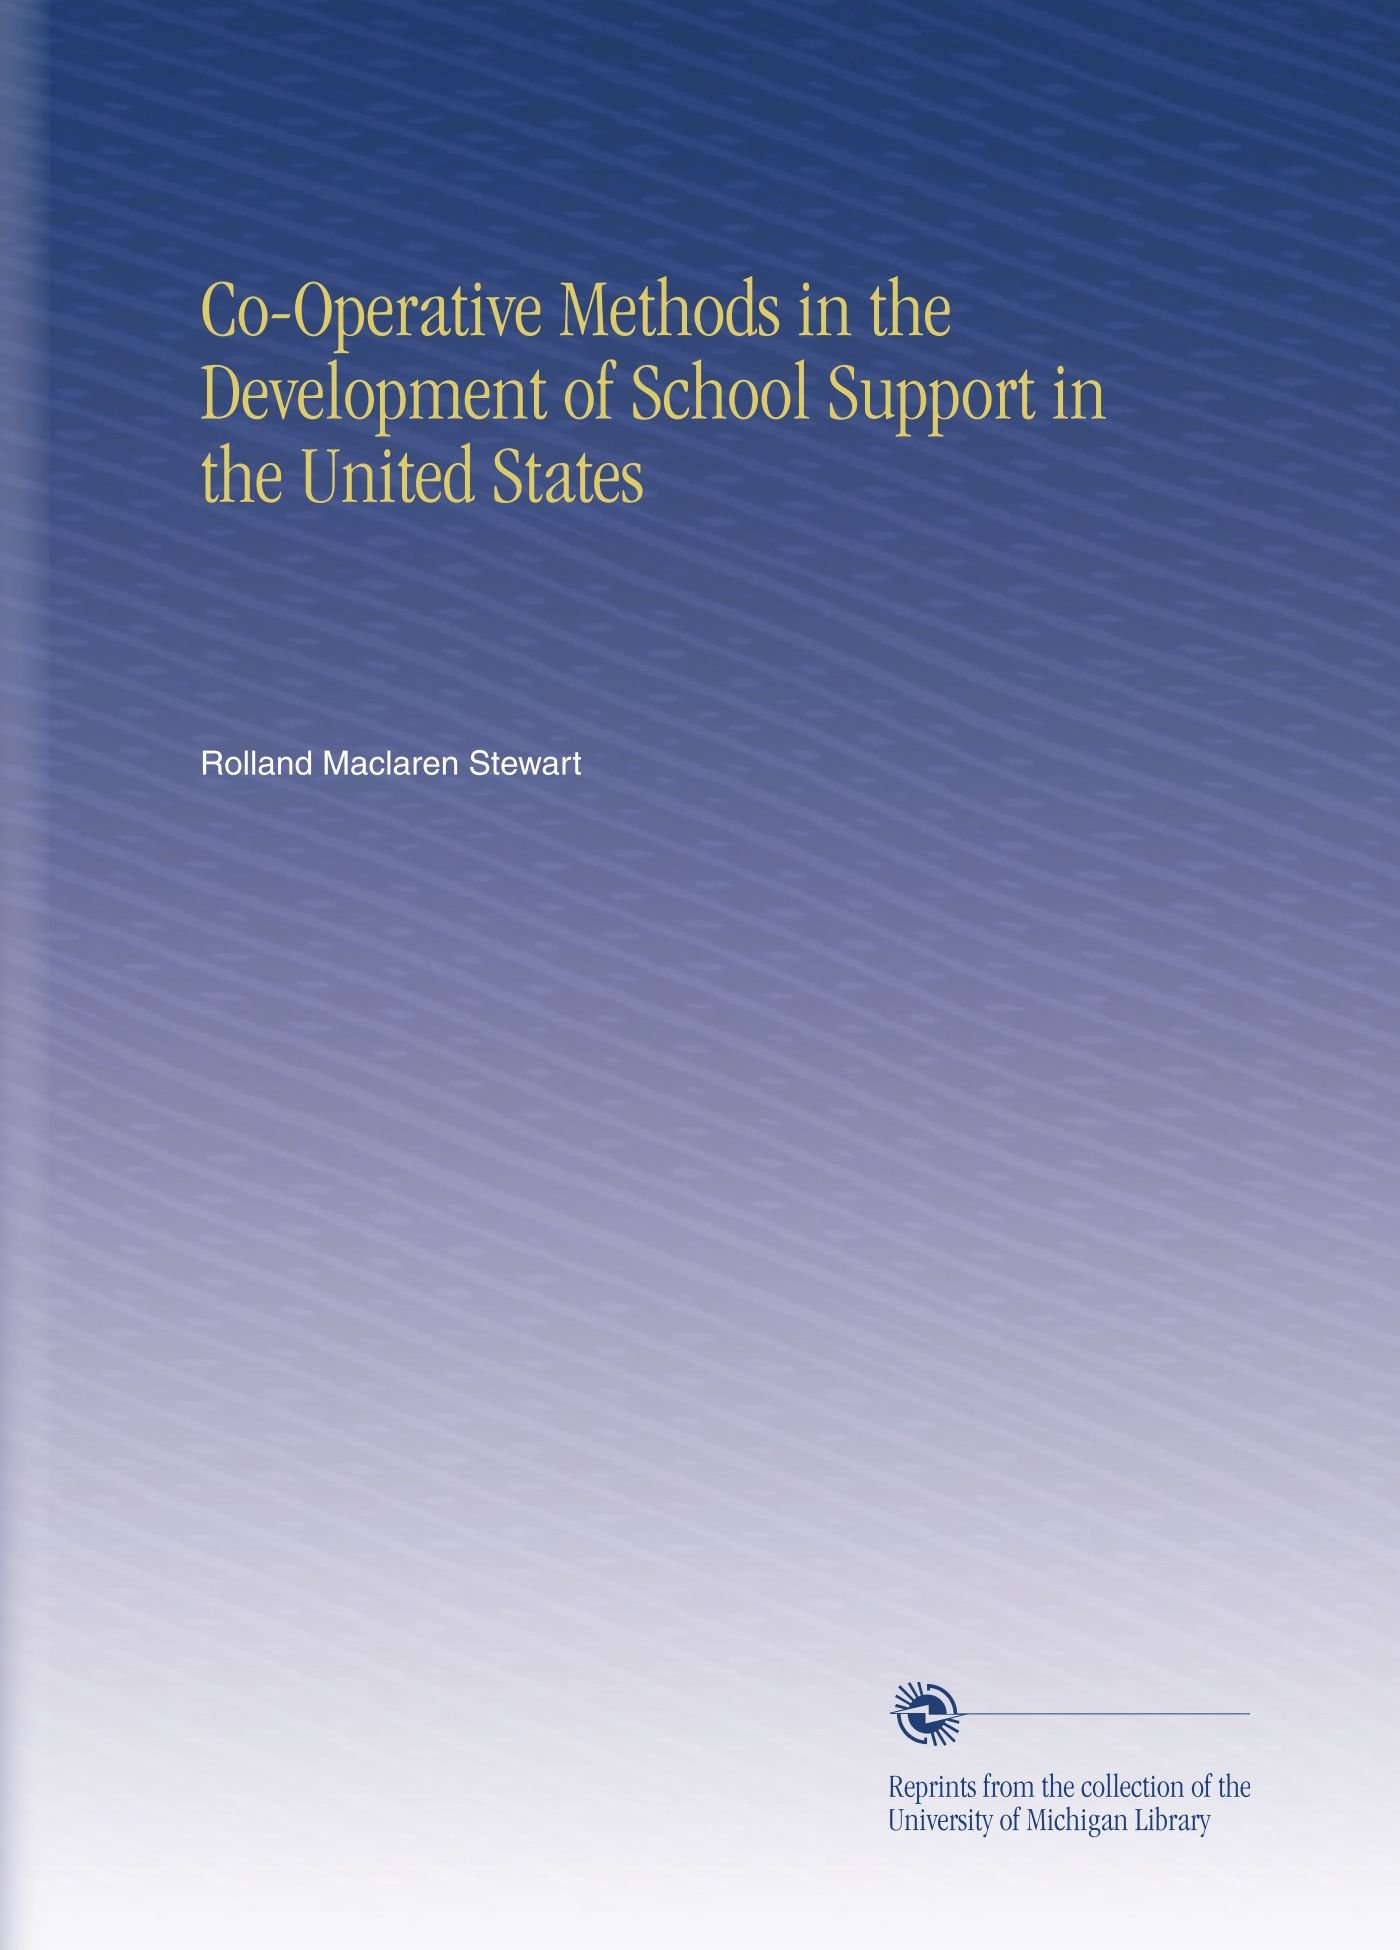 Co-Operative Methods in the Development of School Support in the United States pdf